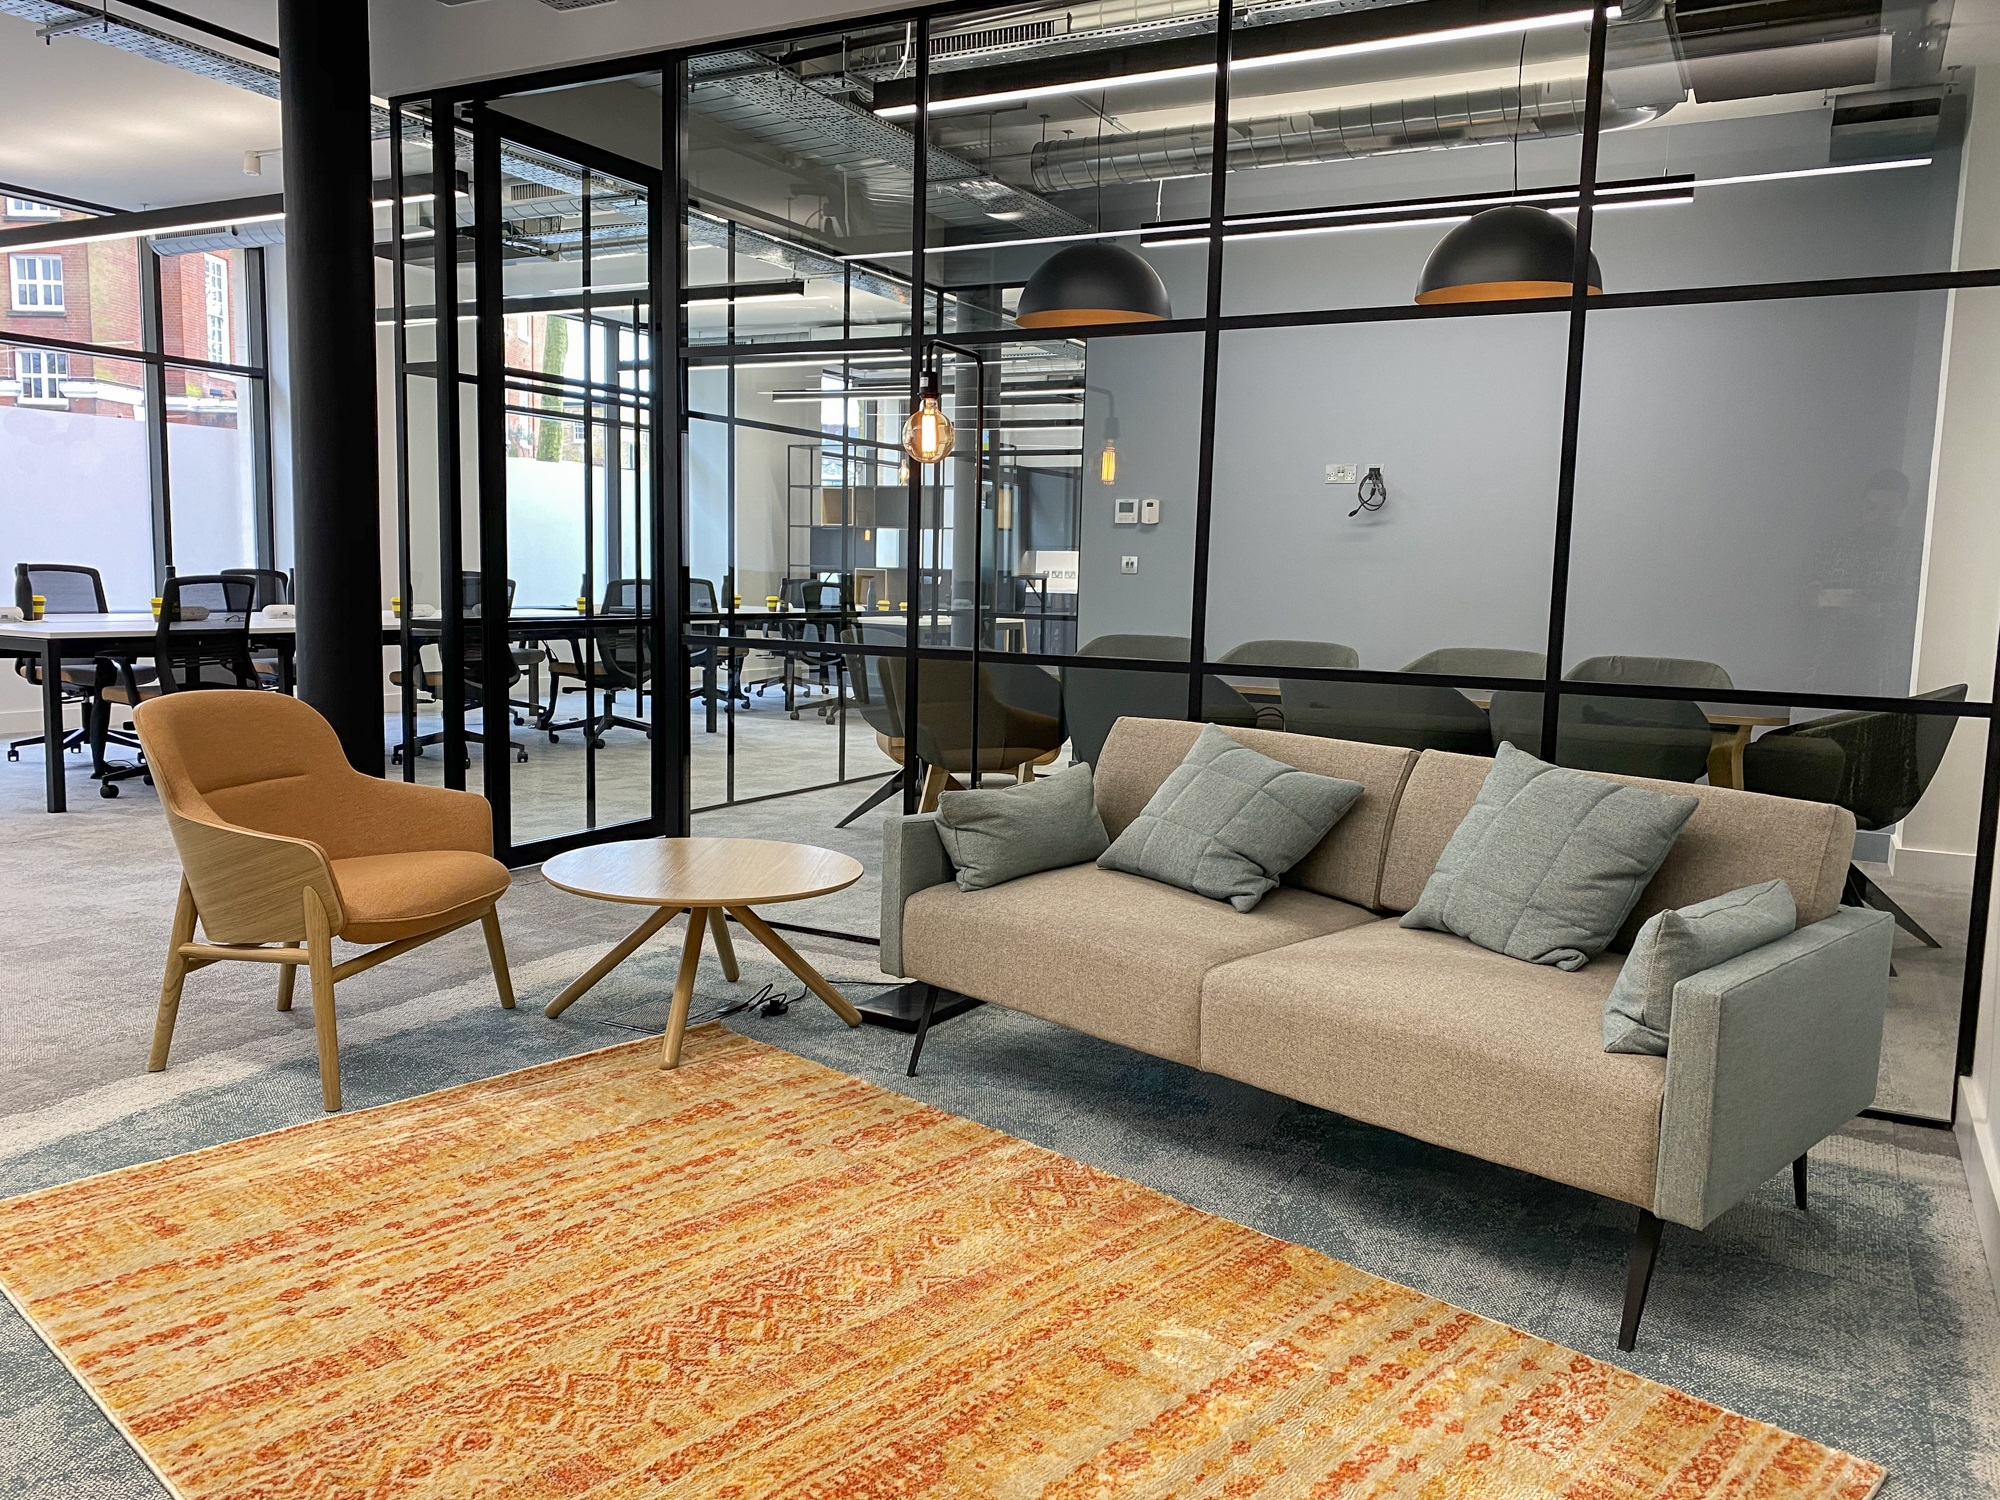 open plan office with boardroom and sofa